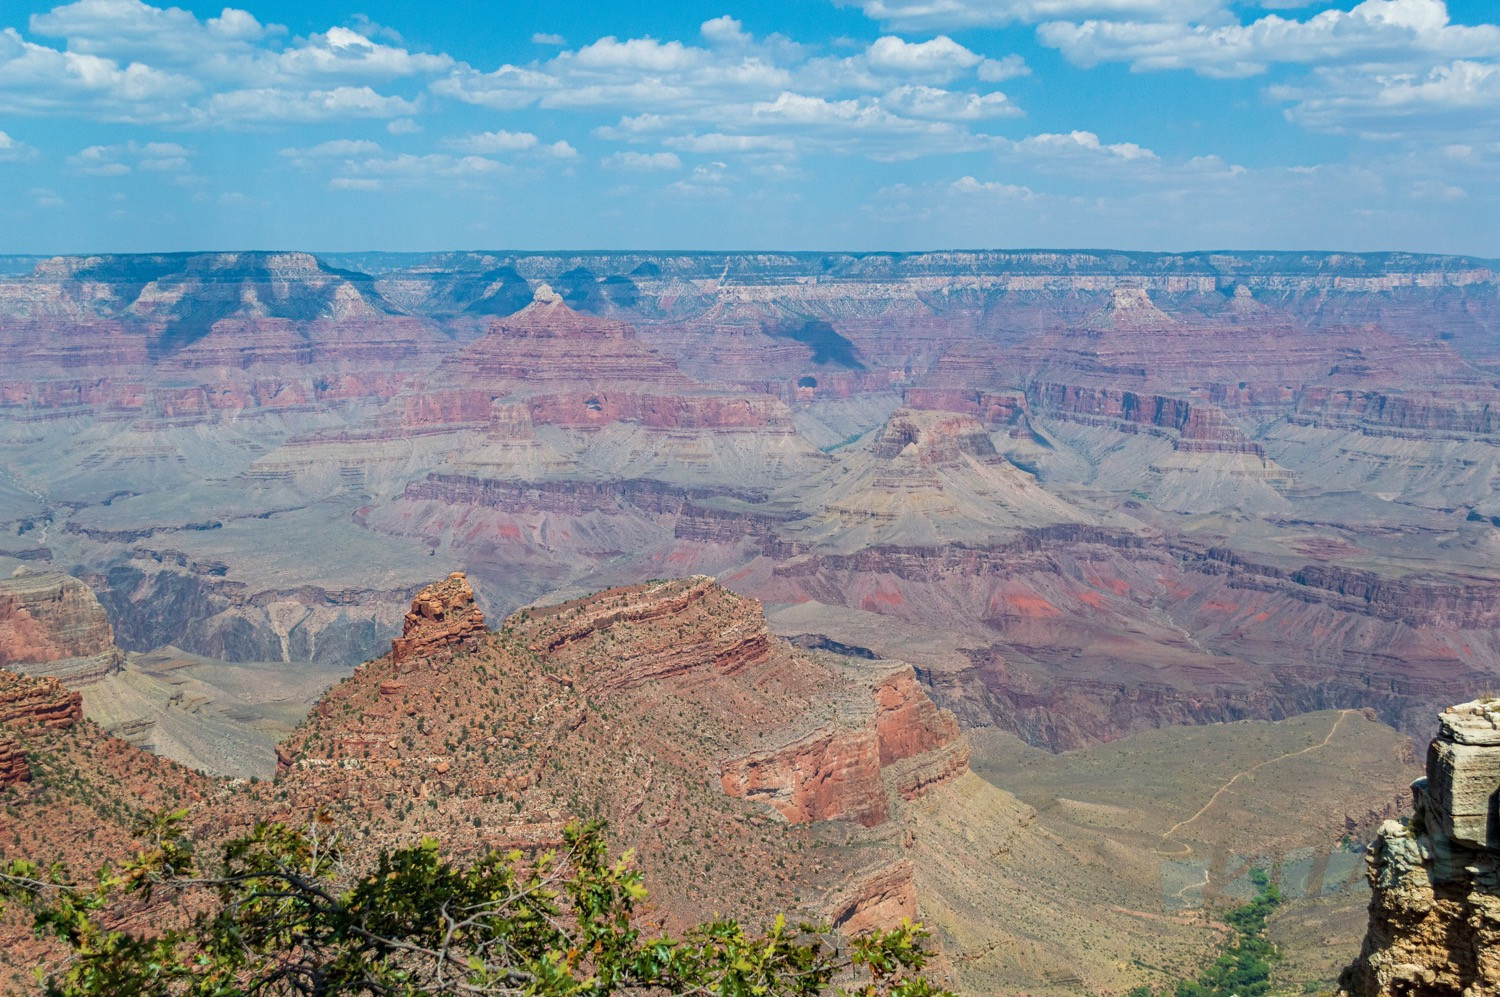 Views of the Grand Canyon